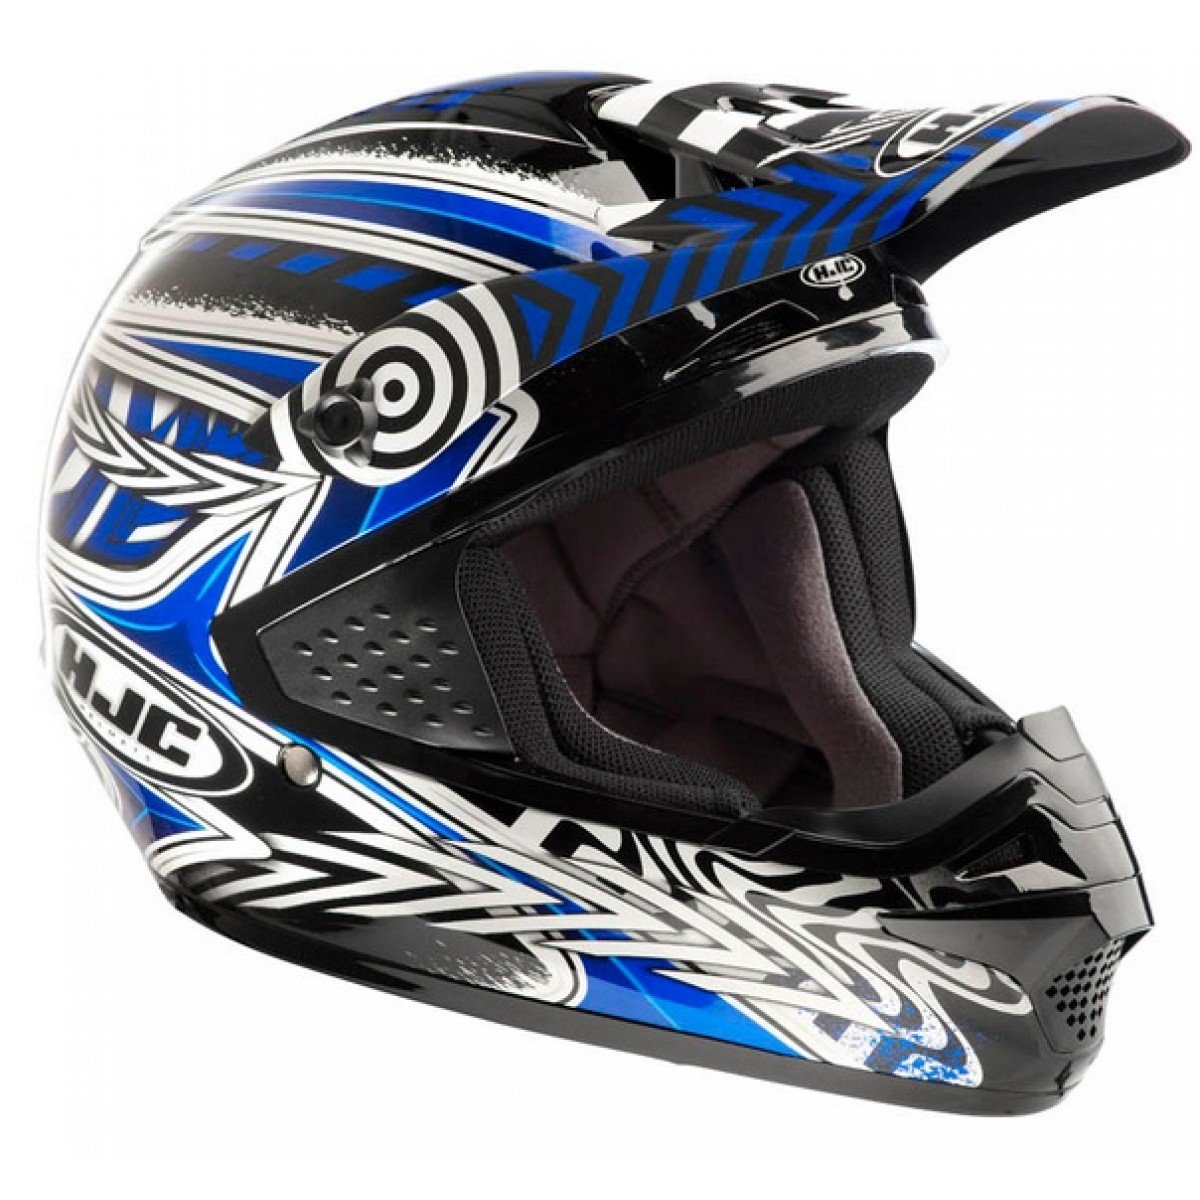 Amazon.es: moto CROSS ENDURO CASCO HJC CS MX-CHARGE MC2 negro talla XL, color azul